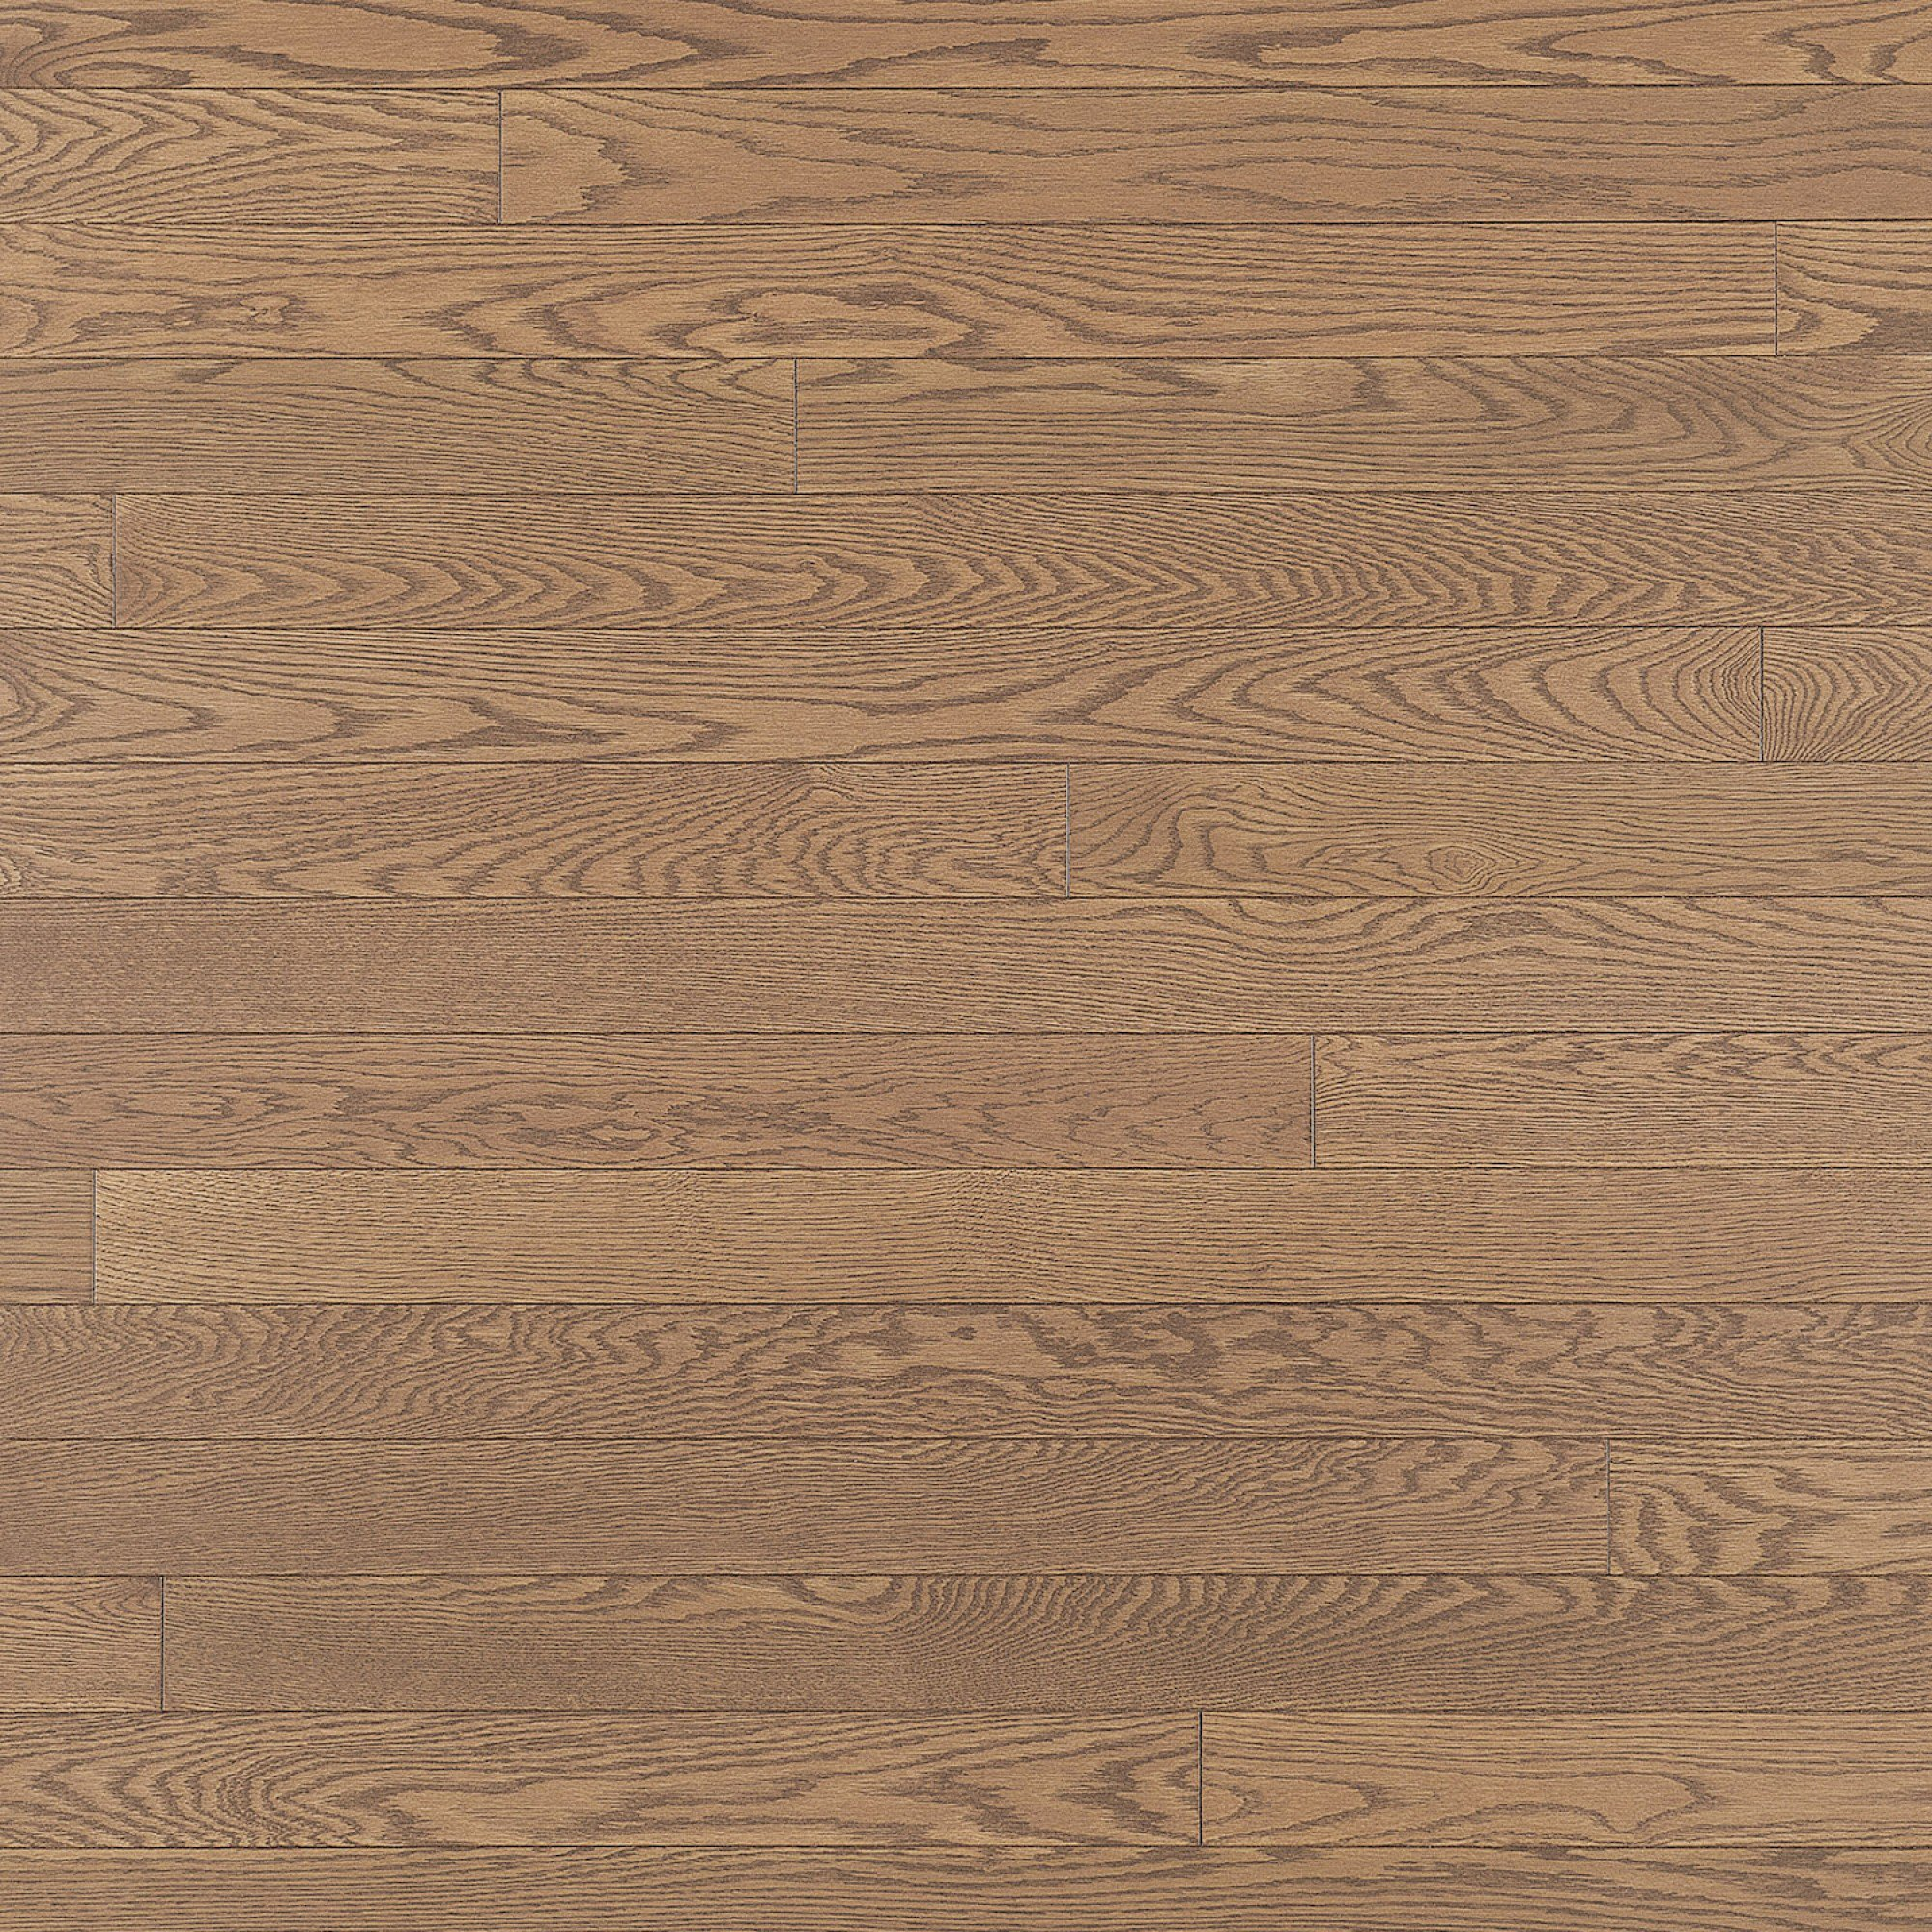 Admiration red oak hudson mirage hardwood floors for Mirage wood floors